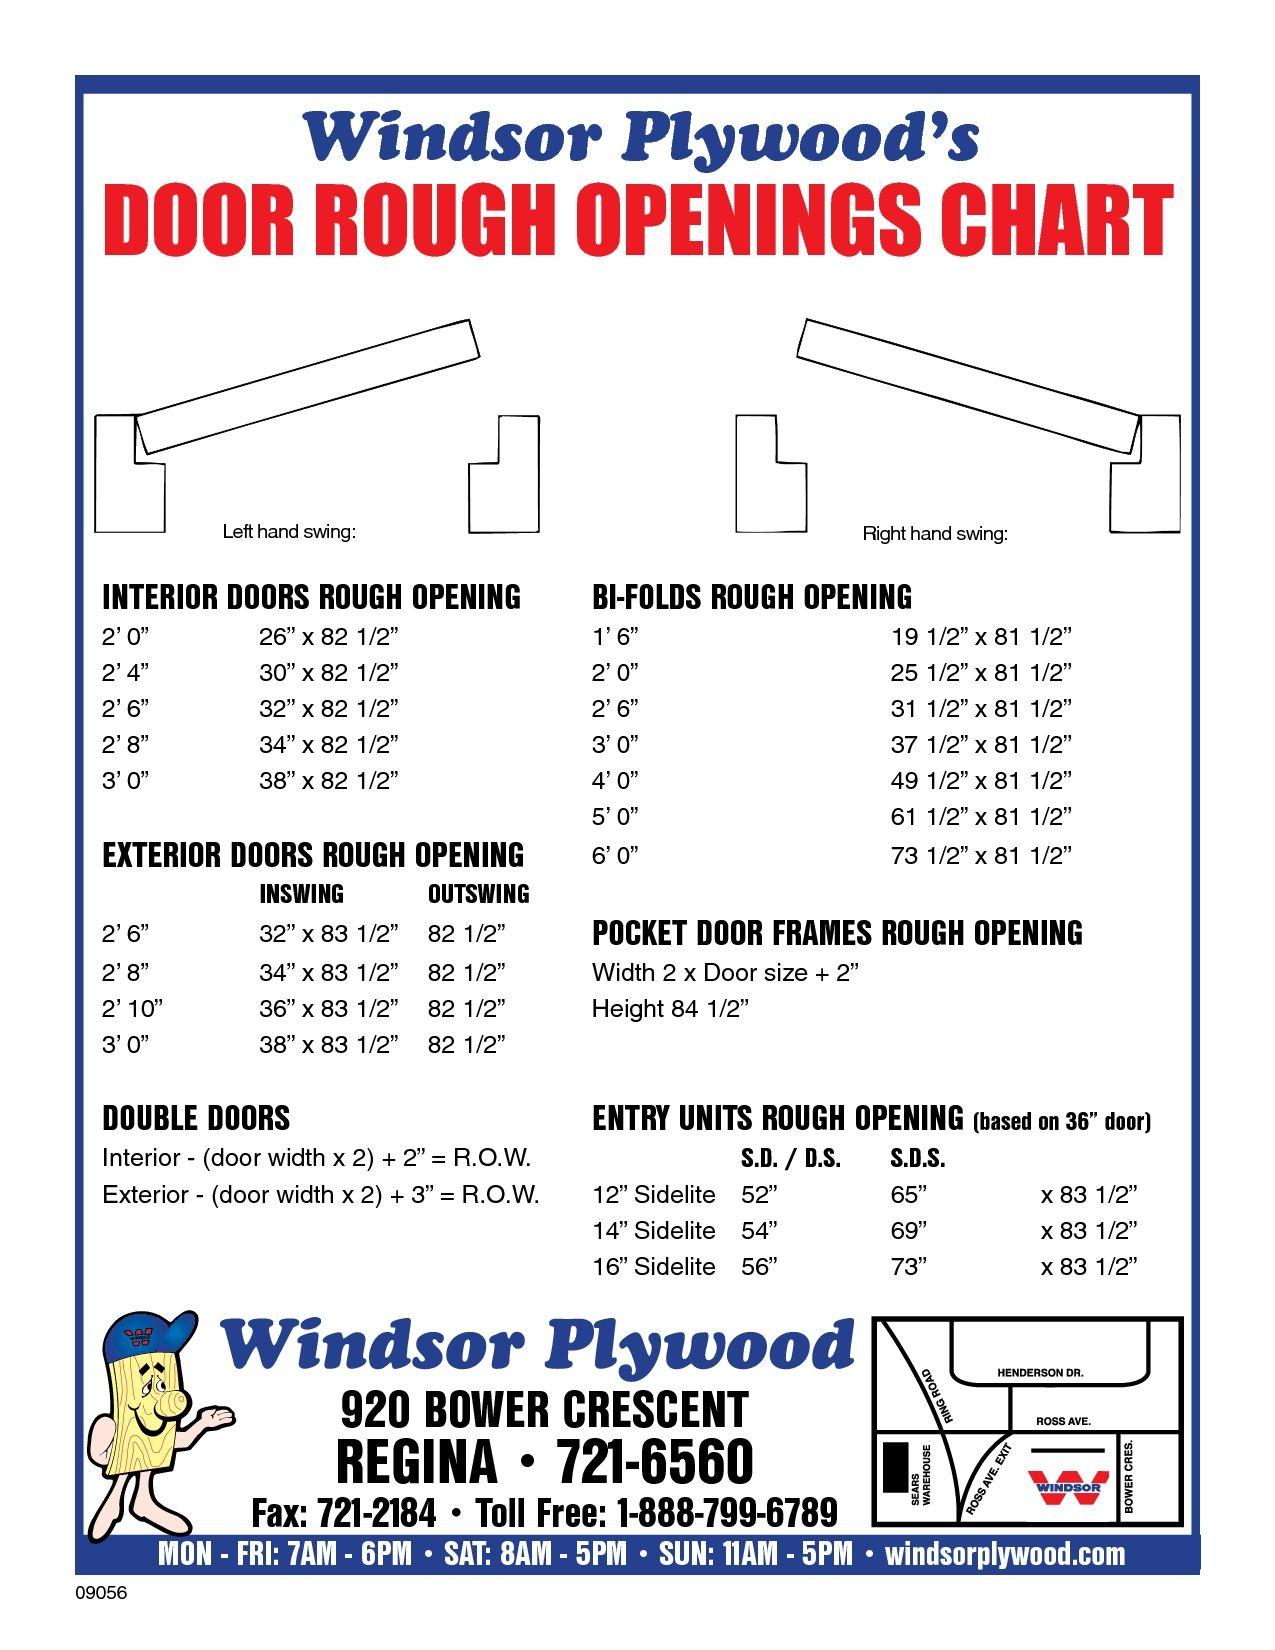 Rough Opening For A 87 Garage Door Doors Interior Garage Door Sizes Exterior Doors